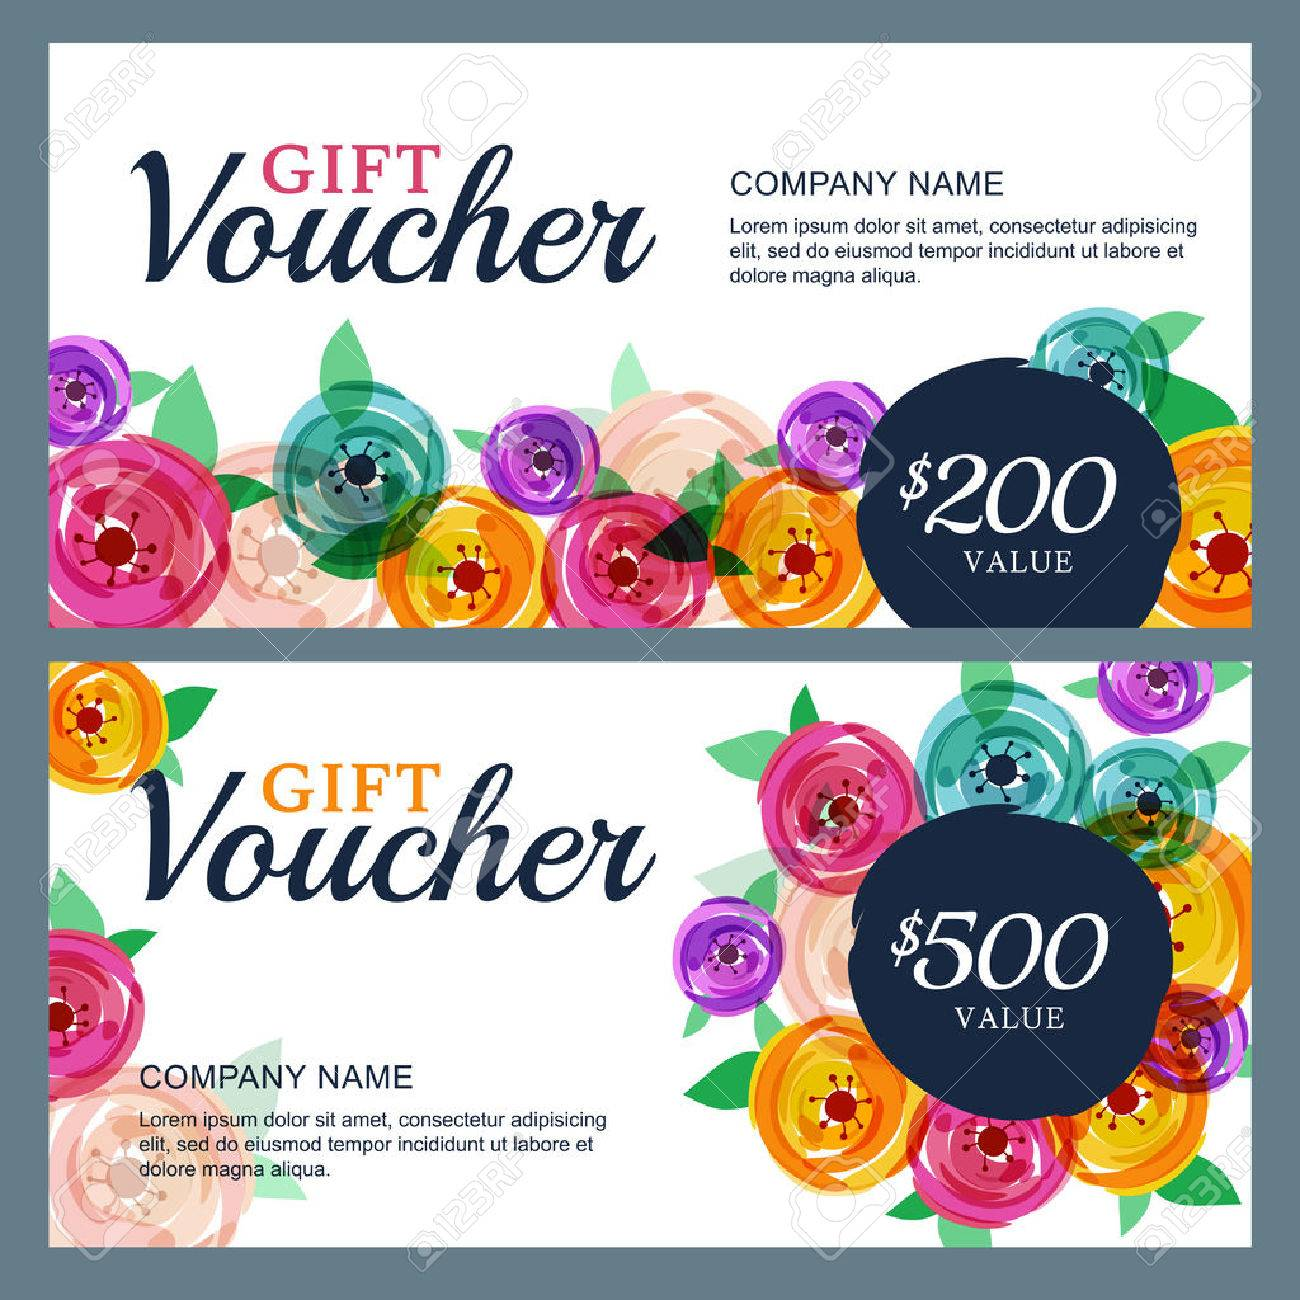 Vector Gift Voucher Template With Decorative Rose Flowers Background.  Business Floral Card Template. Concept  Business Voucher Template